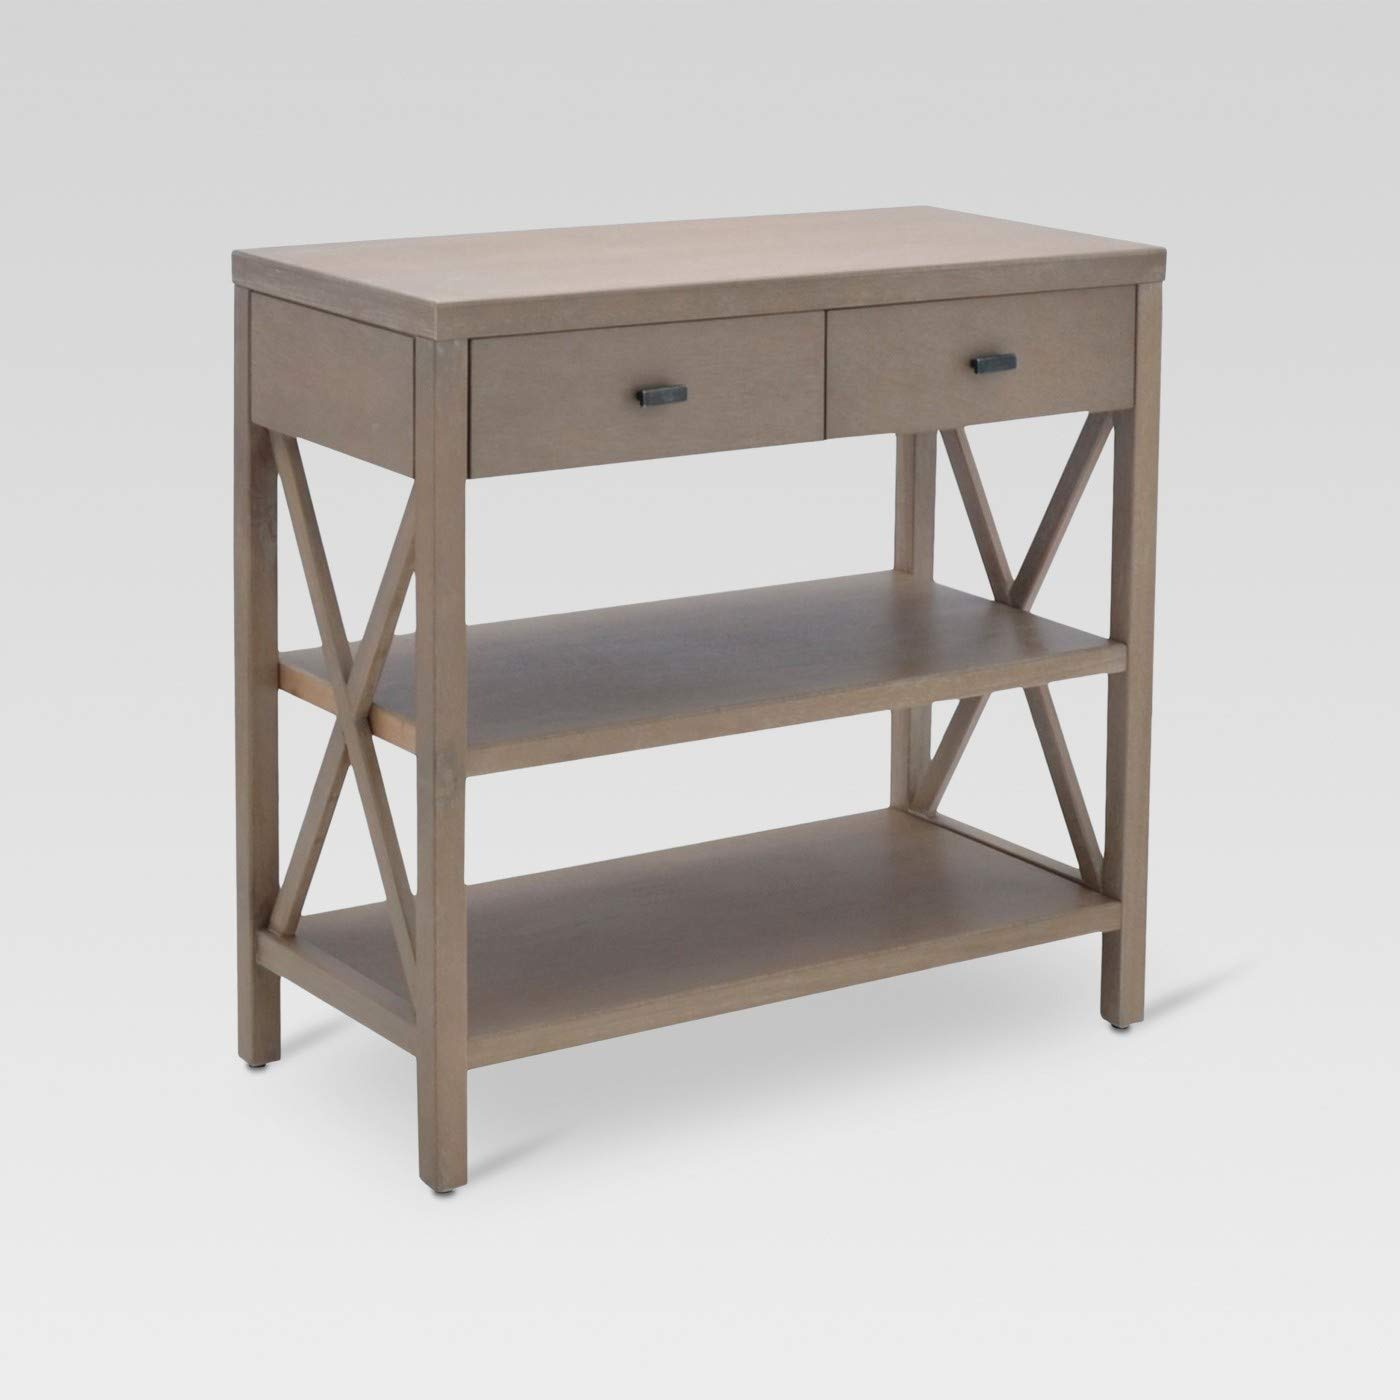 owings console table shelf with drawers threshold accent espresso kitchen dining industrial end drawer drum throne for tall drummers wall unit furniture patio loveseat cover dale